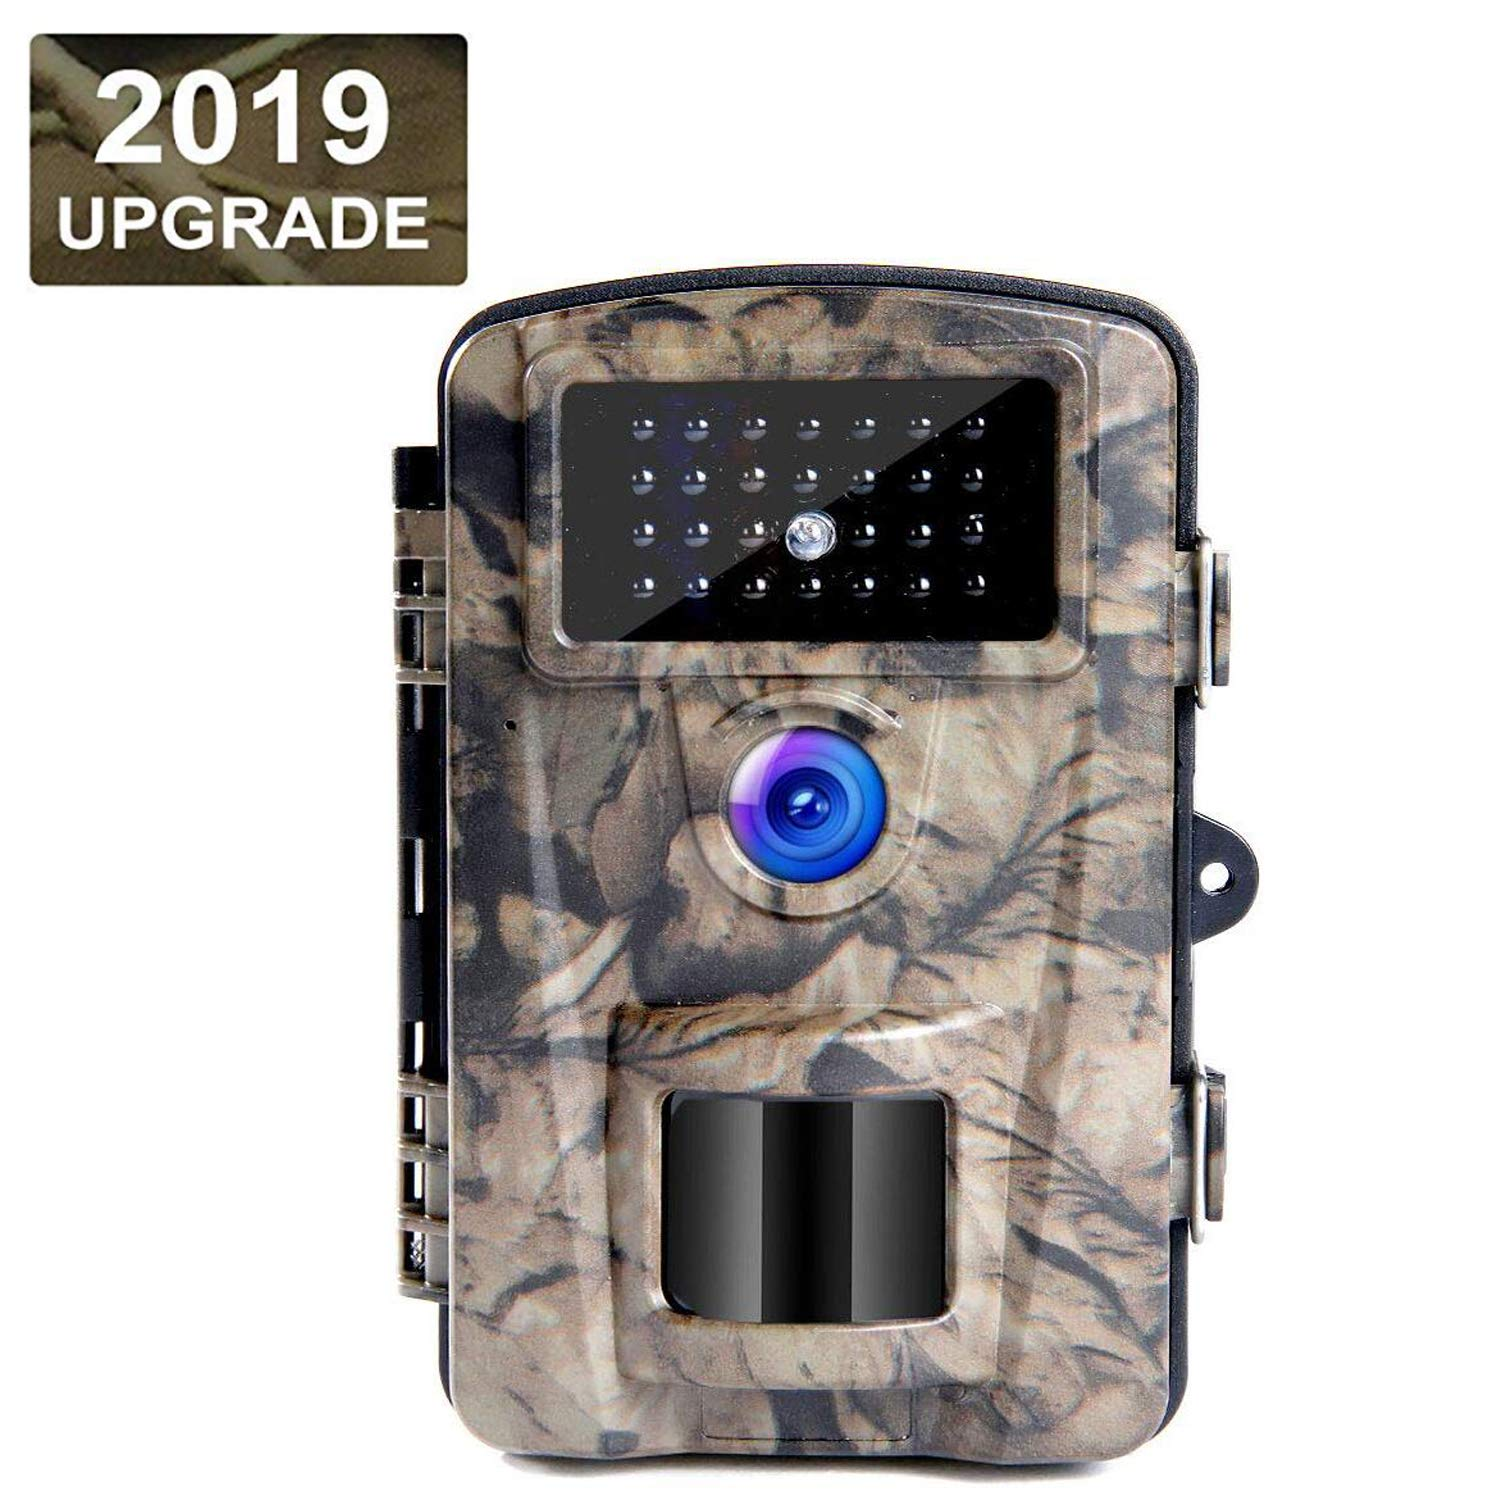 FUNSHION Trail Camera 12MP 1080P Trail Game Camera with 2.4Inch LCD IP66 Waterproof Night Vision Range 65 Feet Hunting Camera 0.2s-0.6s Triggering Time Wildlife Camera